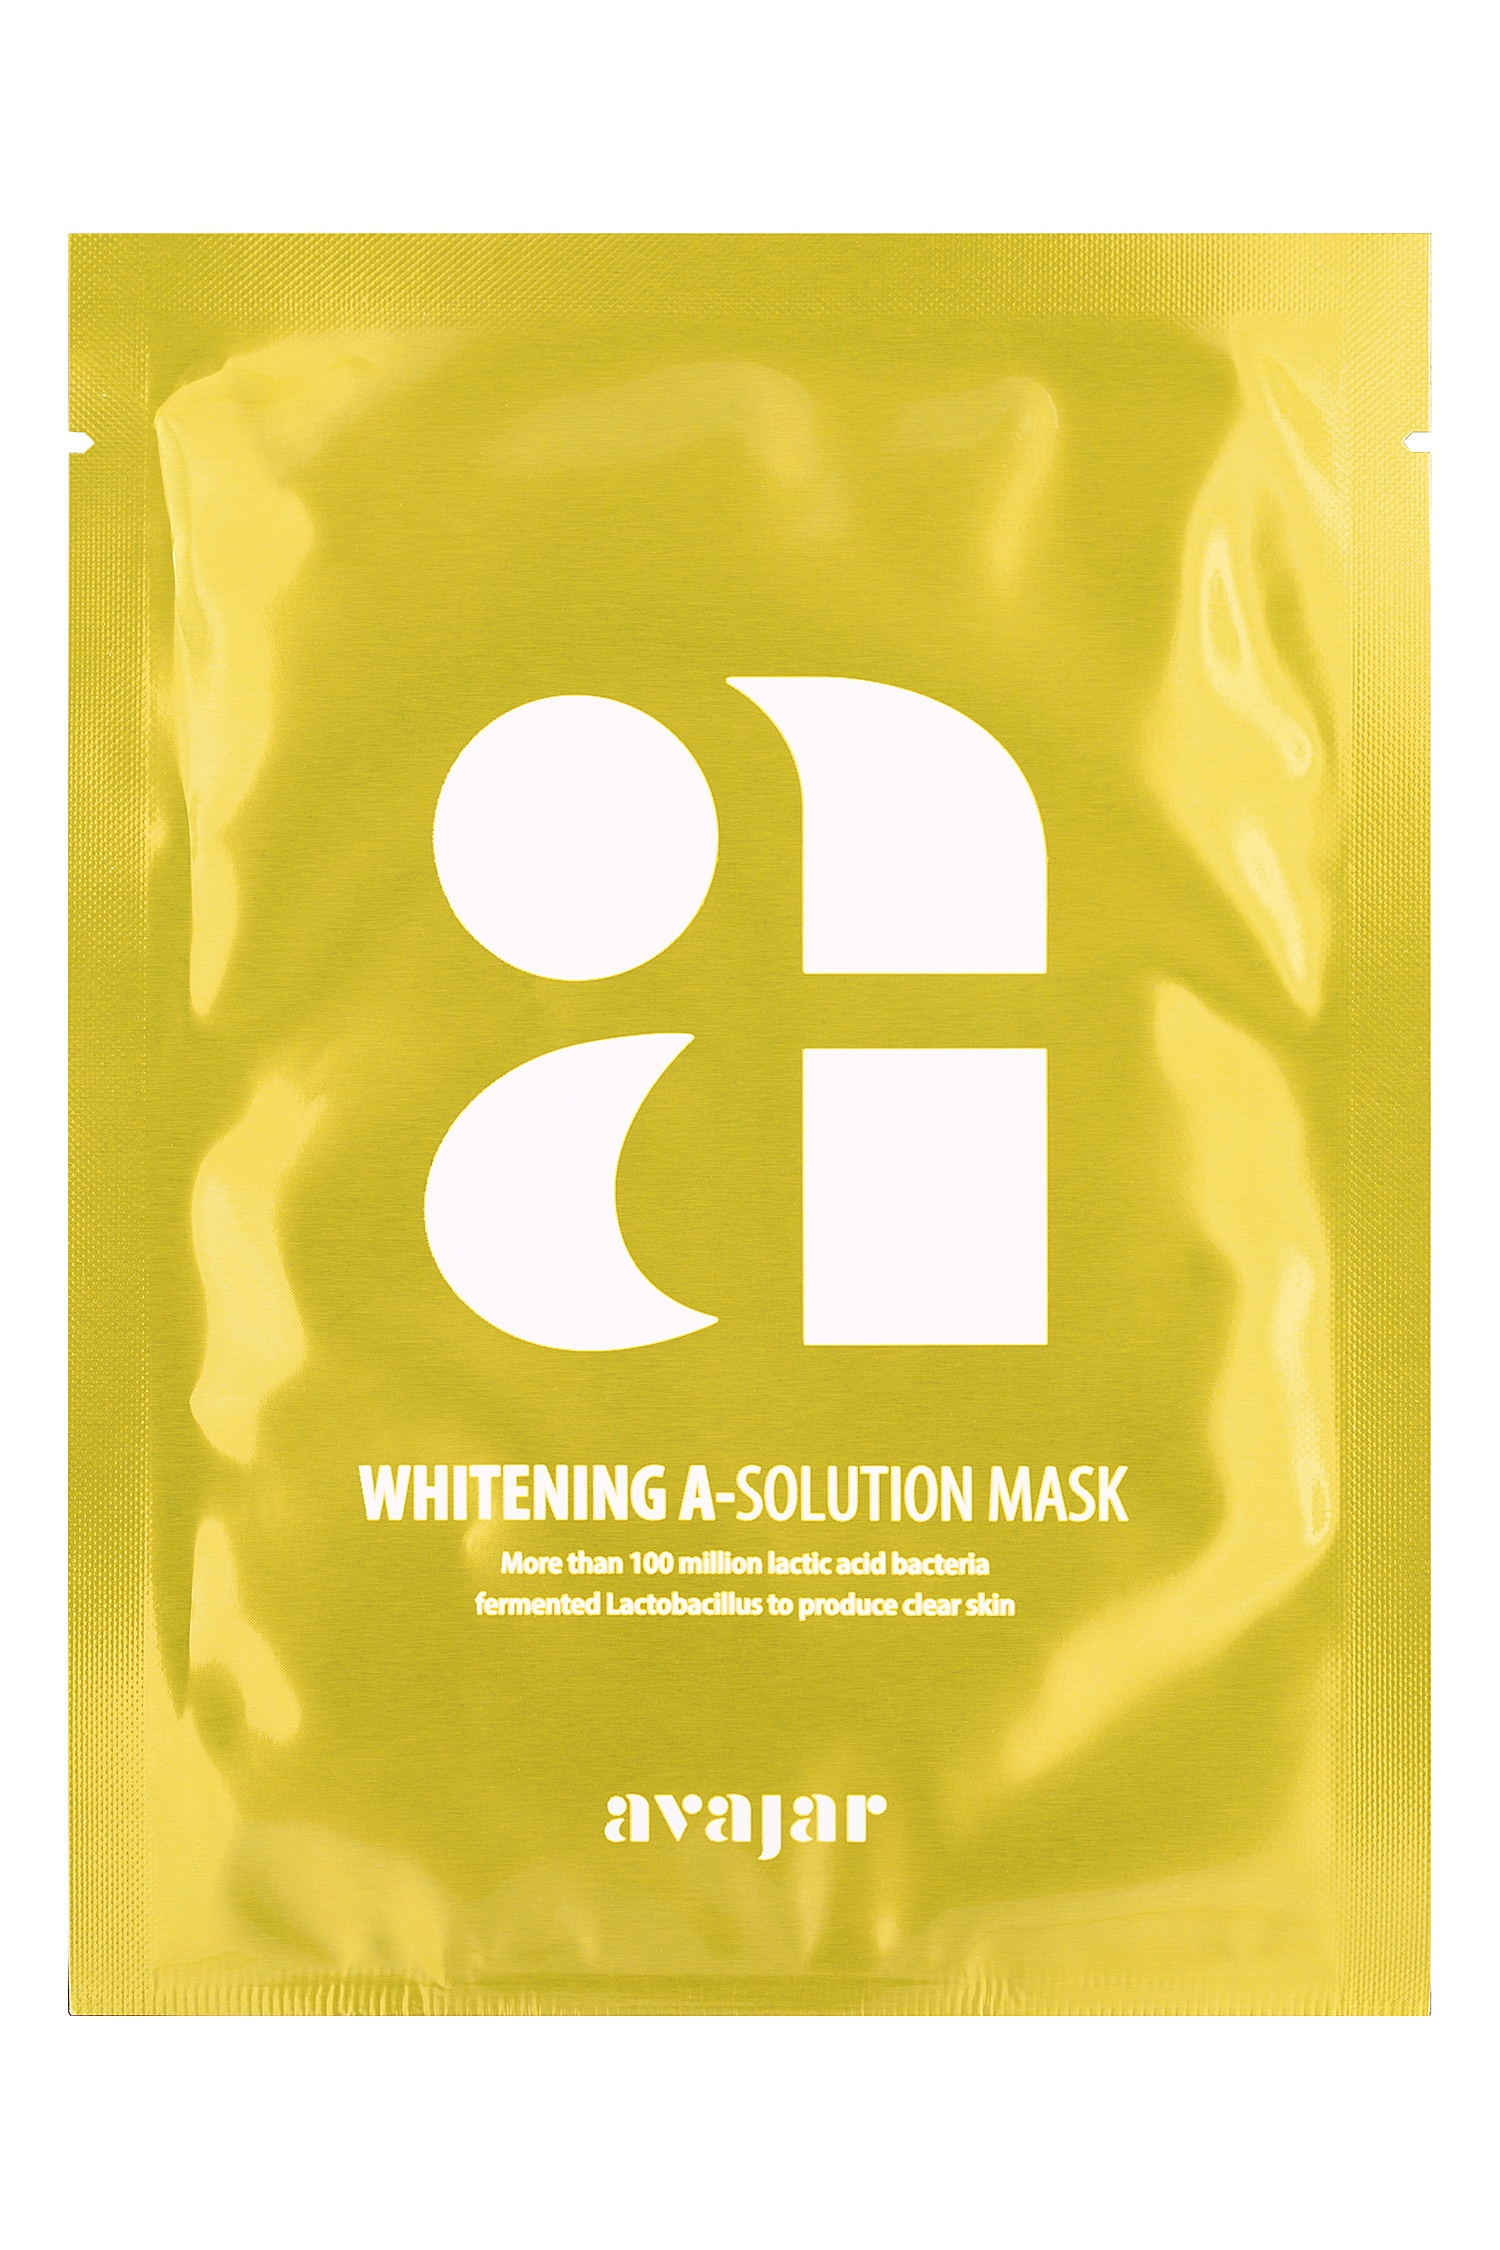 Avajar Whitening A-Solution Mask - 1 уп. 10 шт. Avajar (фото)